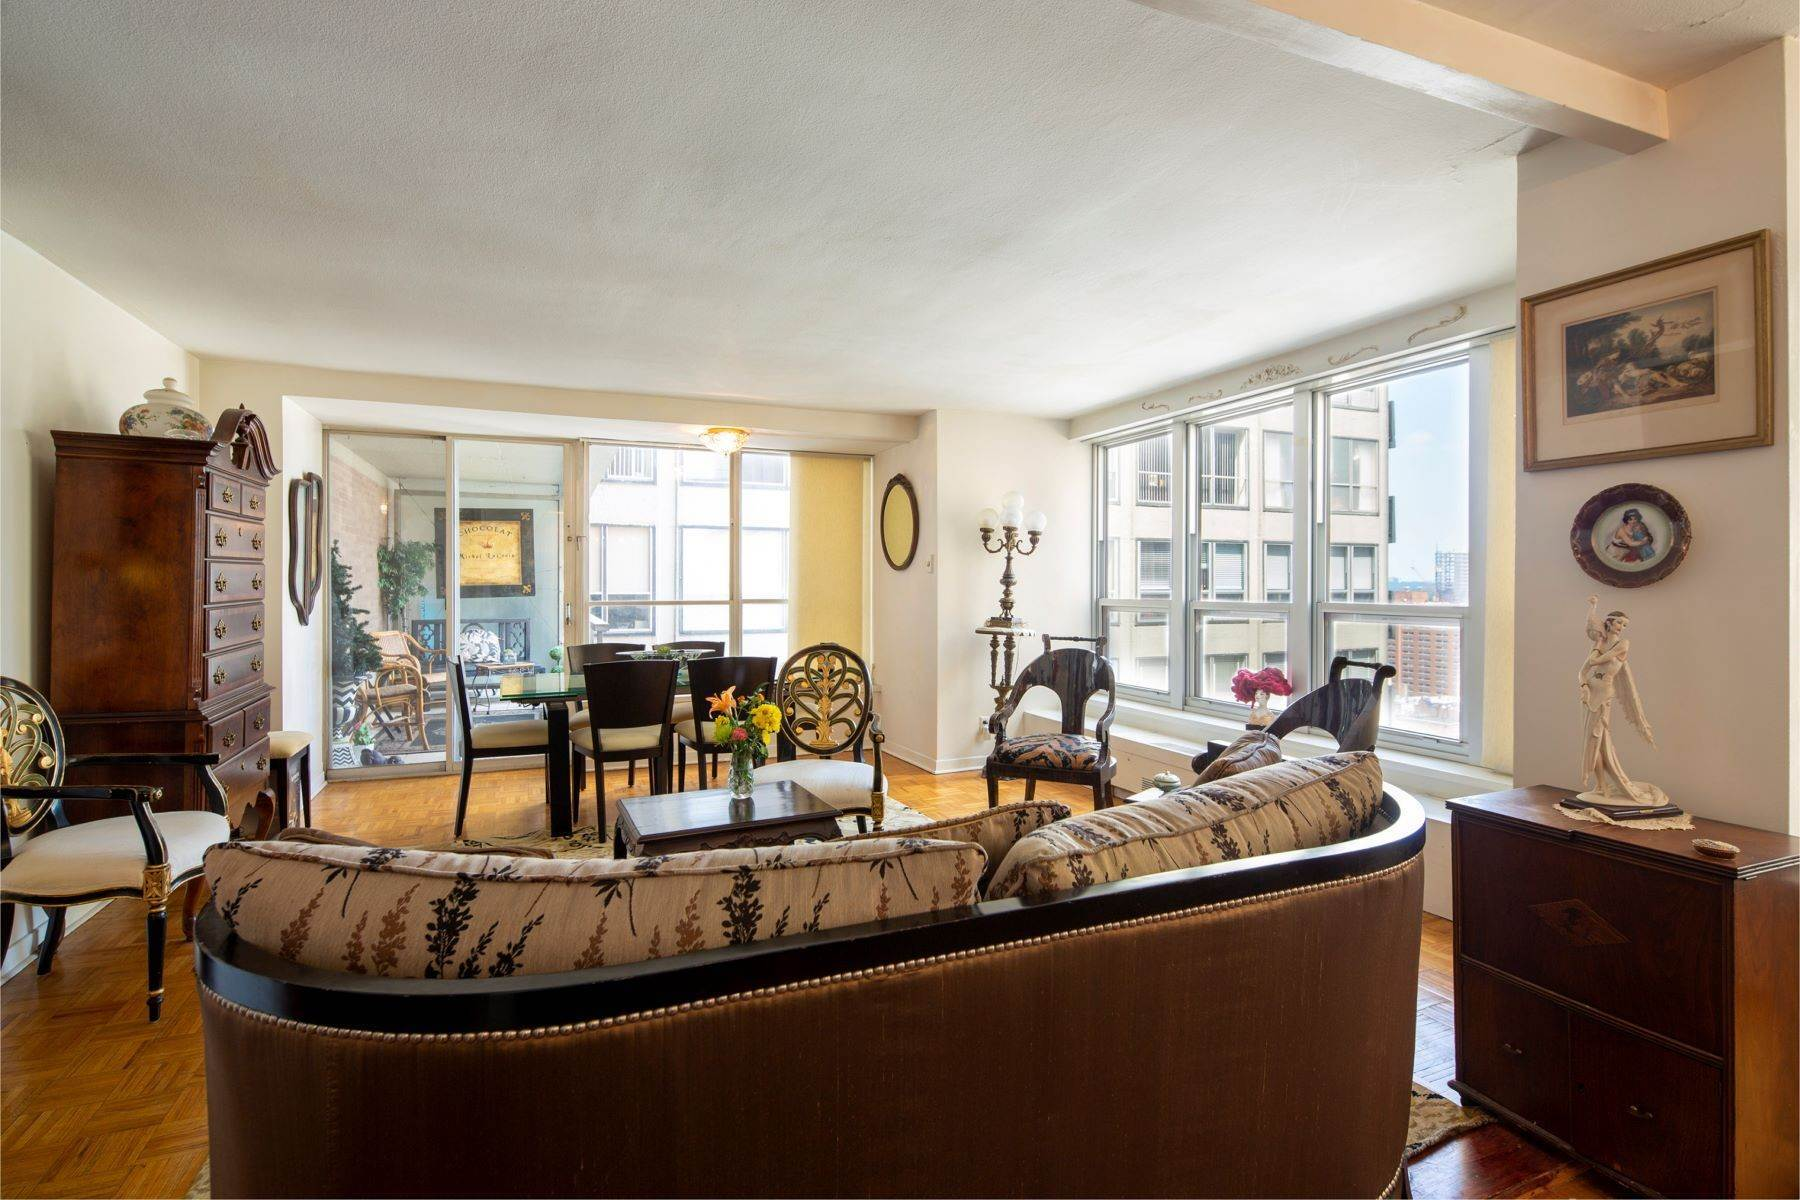 2. Apartments for Sale at 224-226 W RITTENHOUSE SQ #2001-2, 2001-2 Philadelphia, Pennsylvania 19103 United States